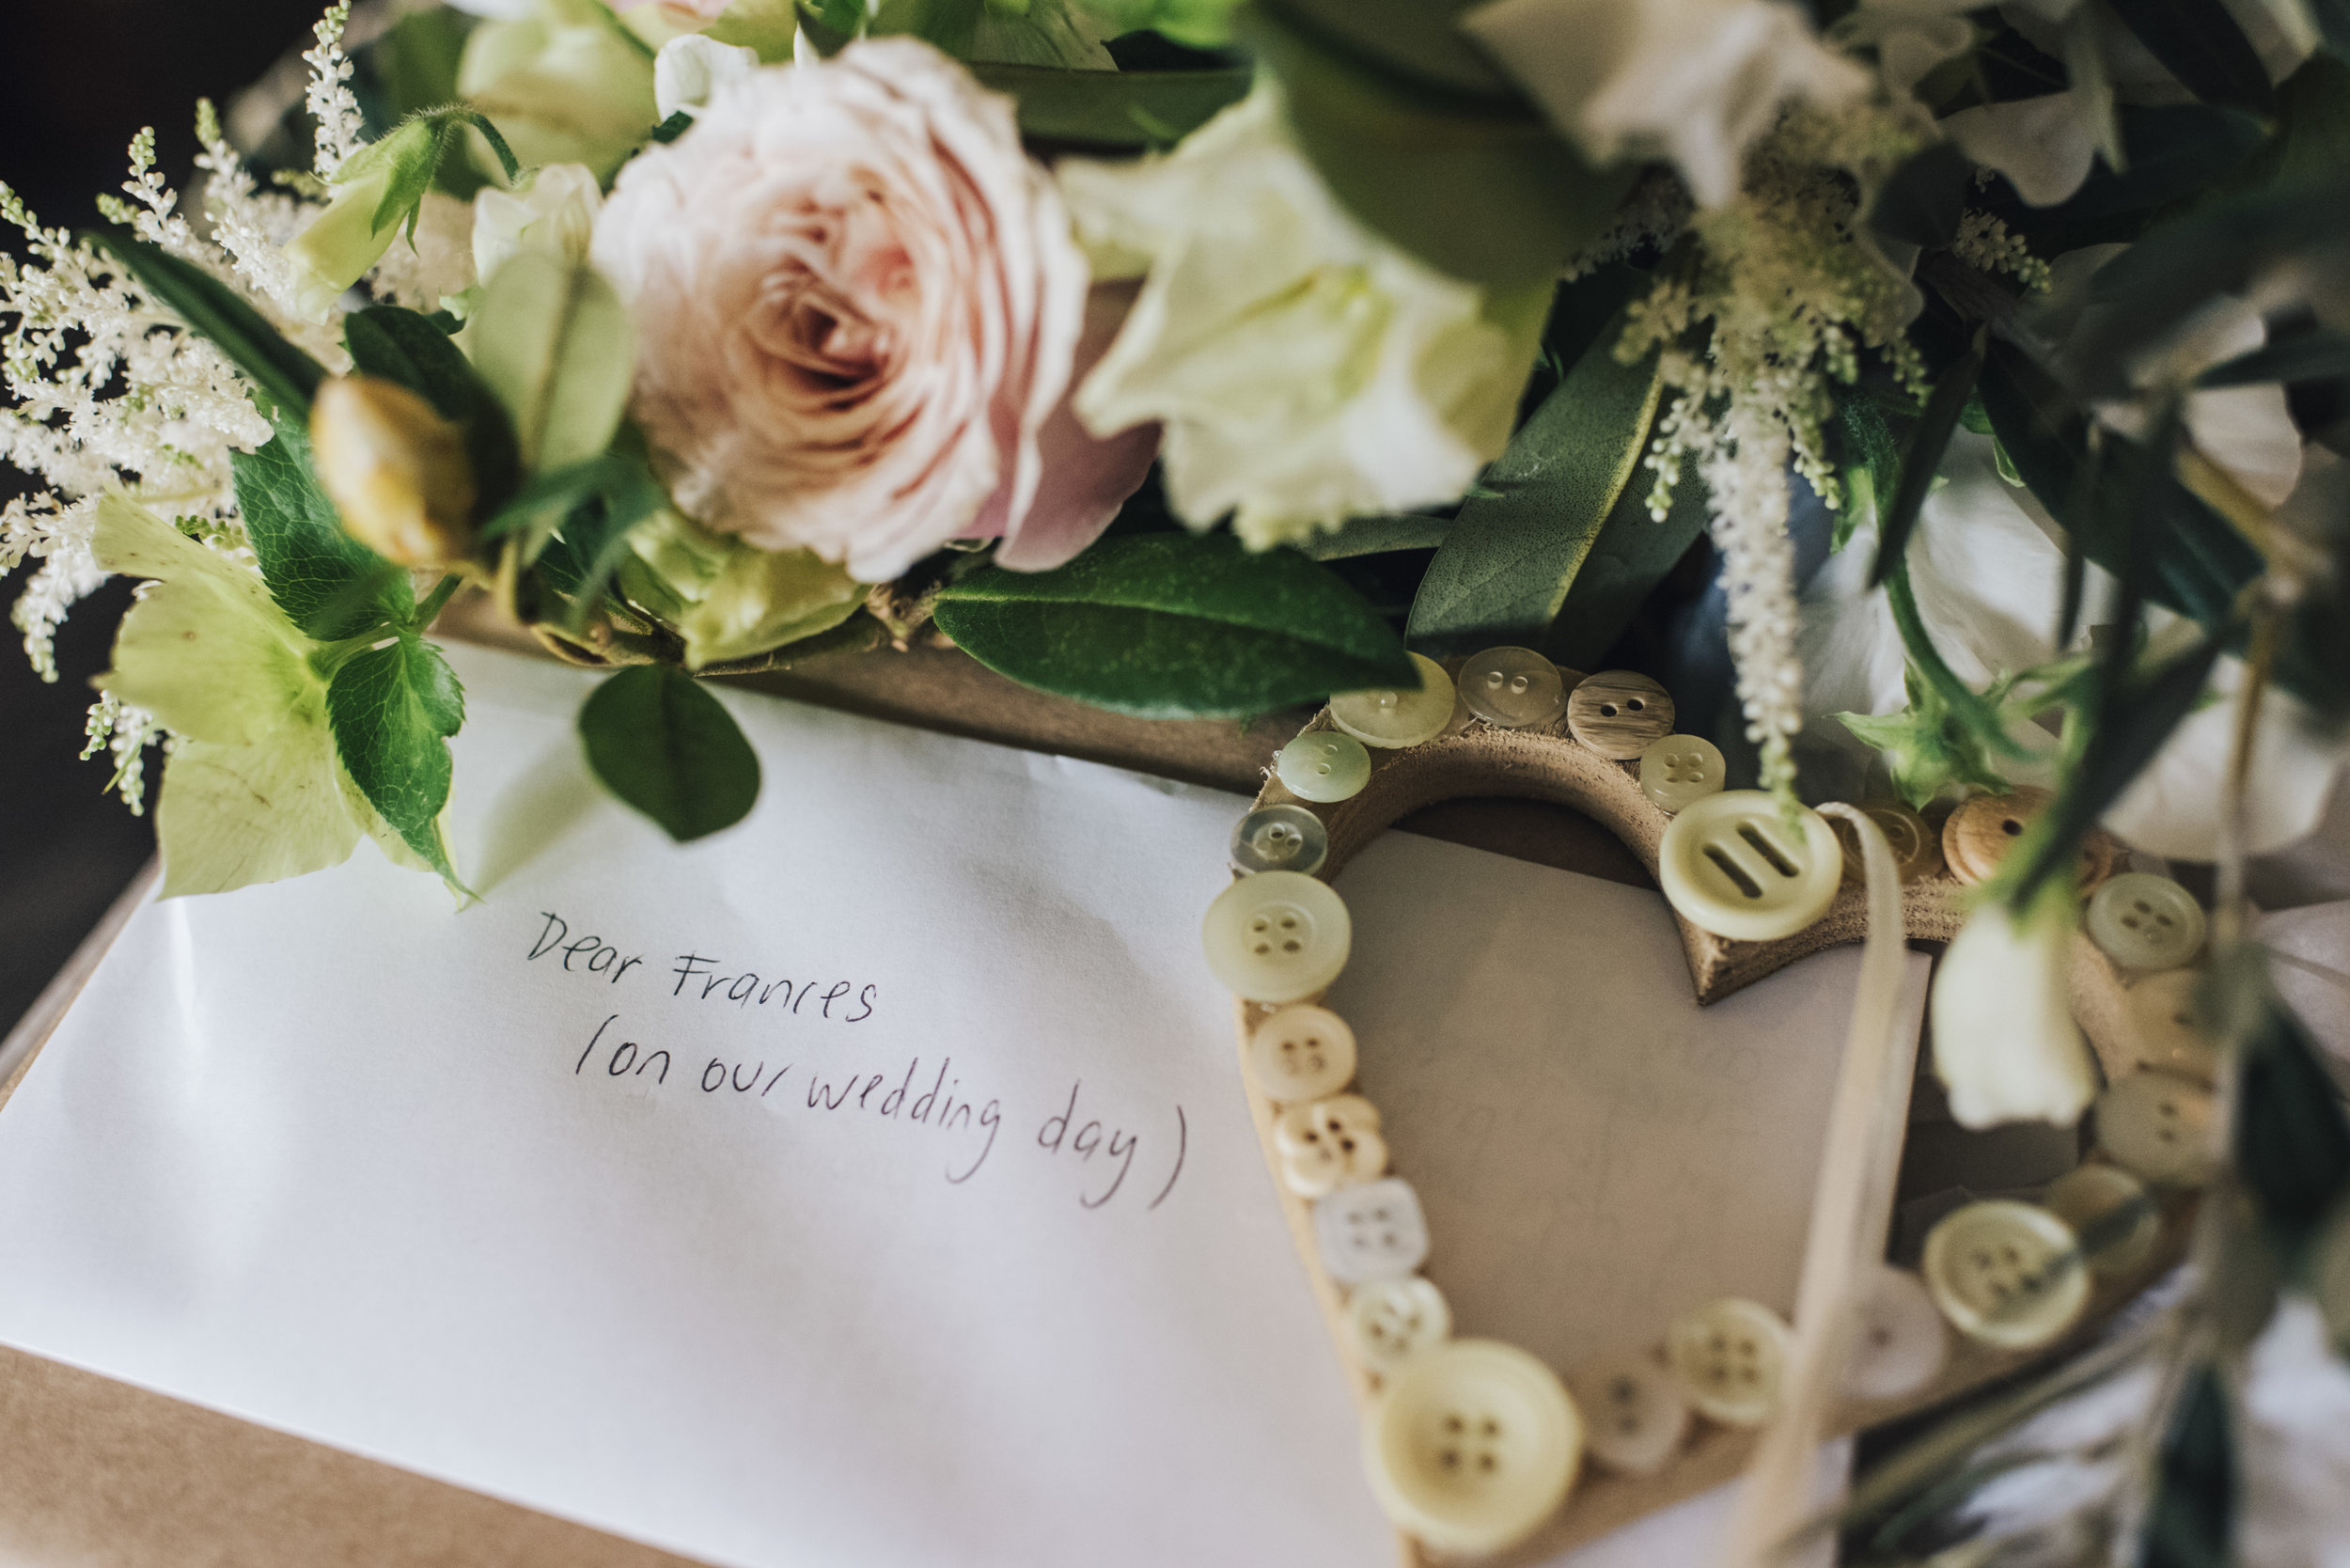 Bride Details and love note